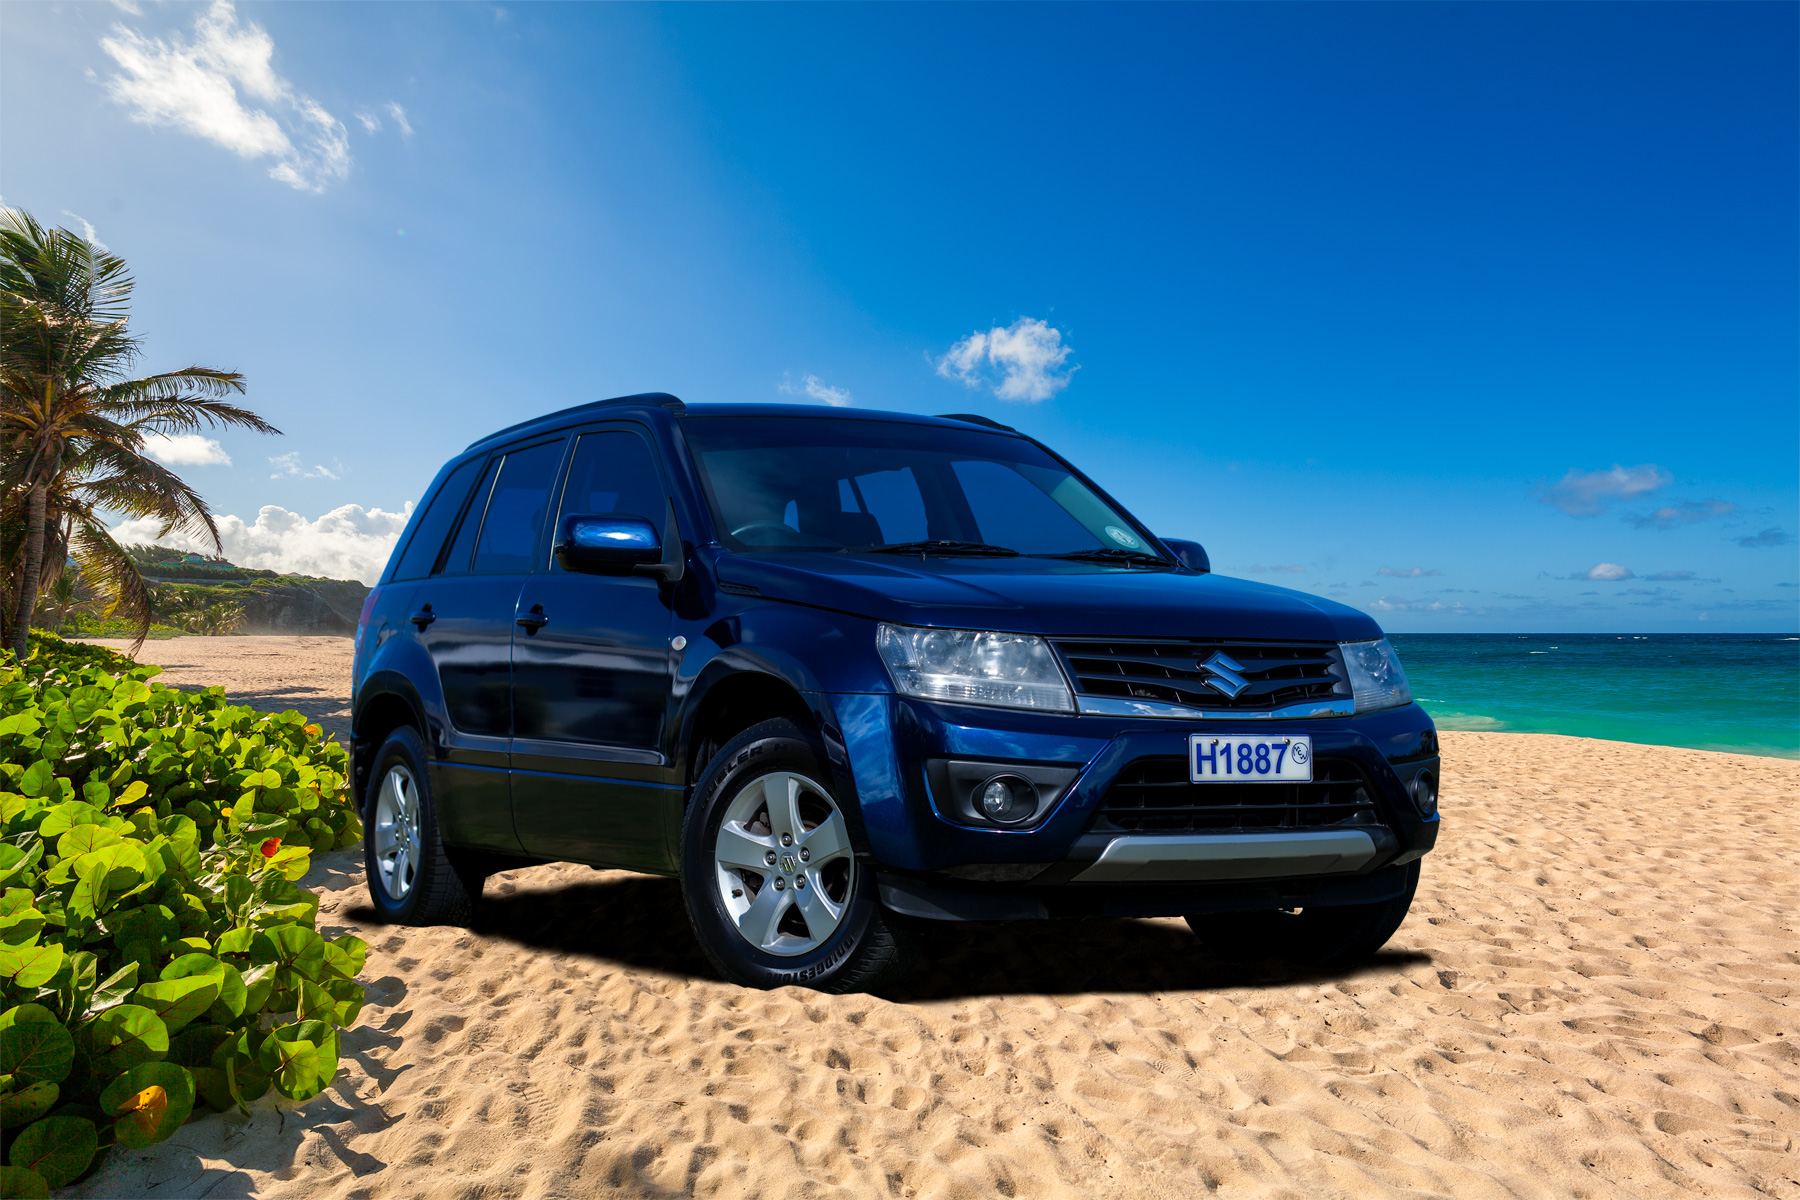 hire a suzuki grand vitara standard suv sfar in barbados from stoutes car rental. Black Bedroom Furniture Sets. Home Design Ideas